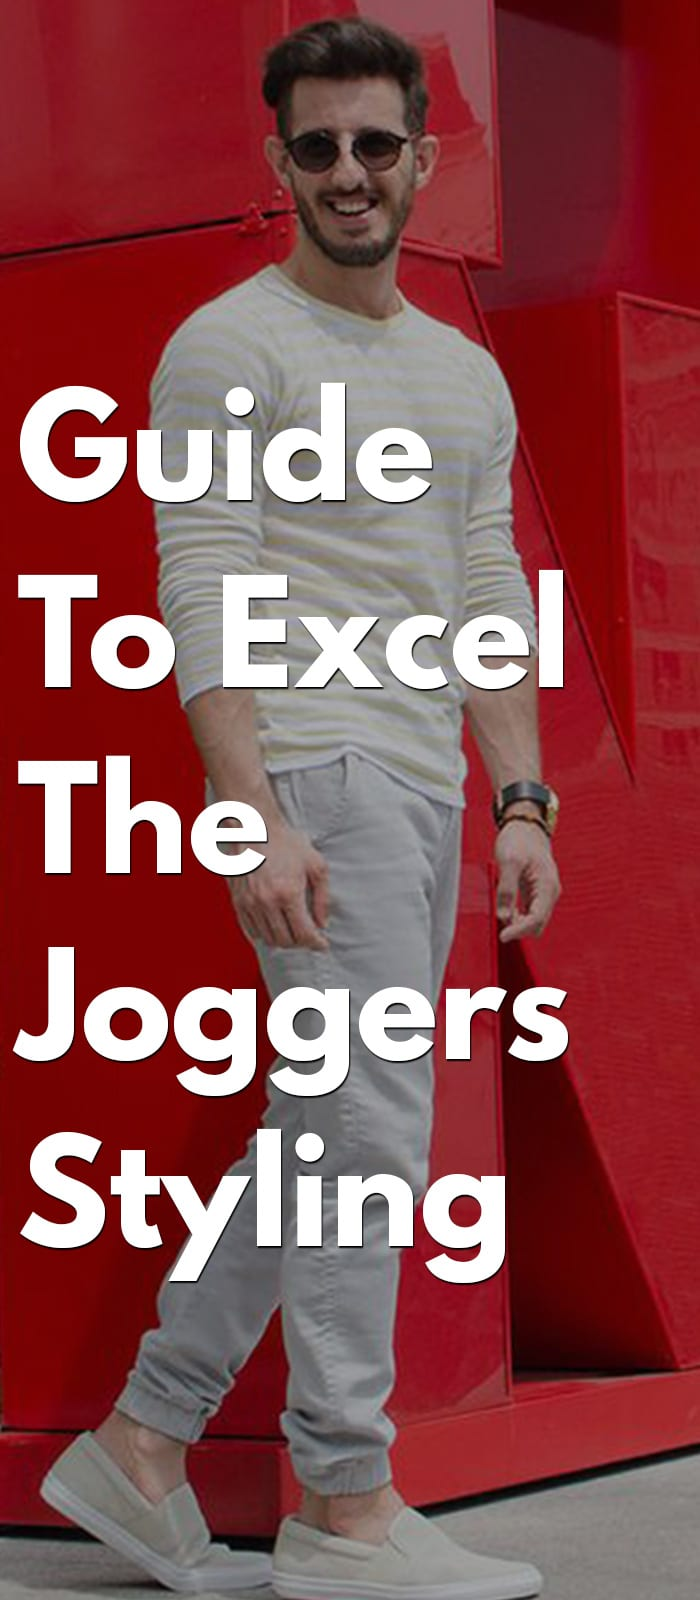 Guide To Excel The Joggers Styling in 2018